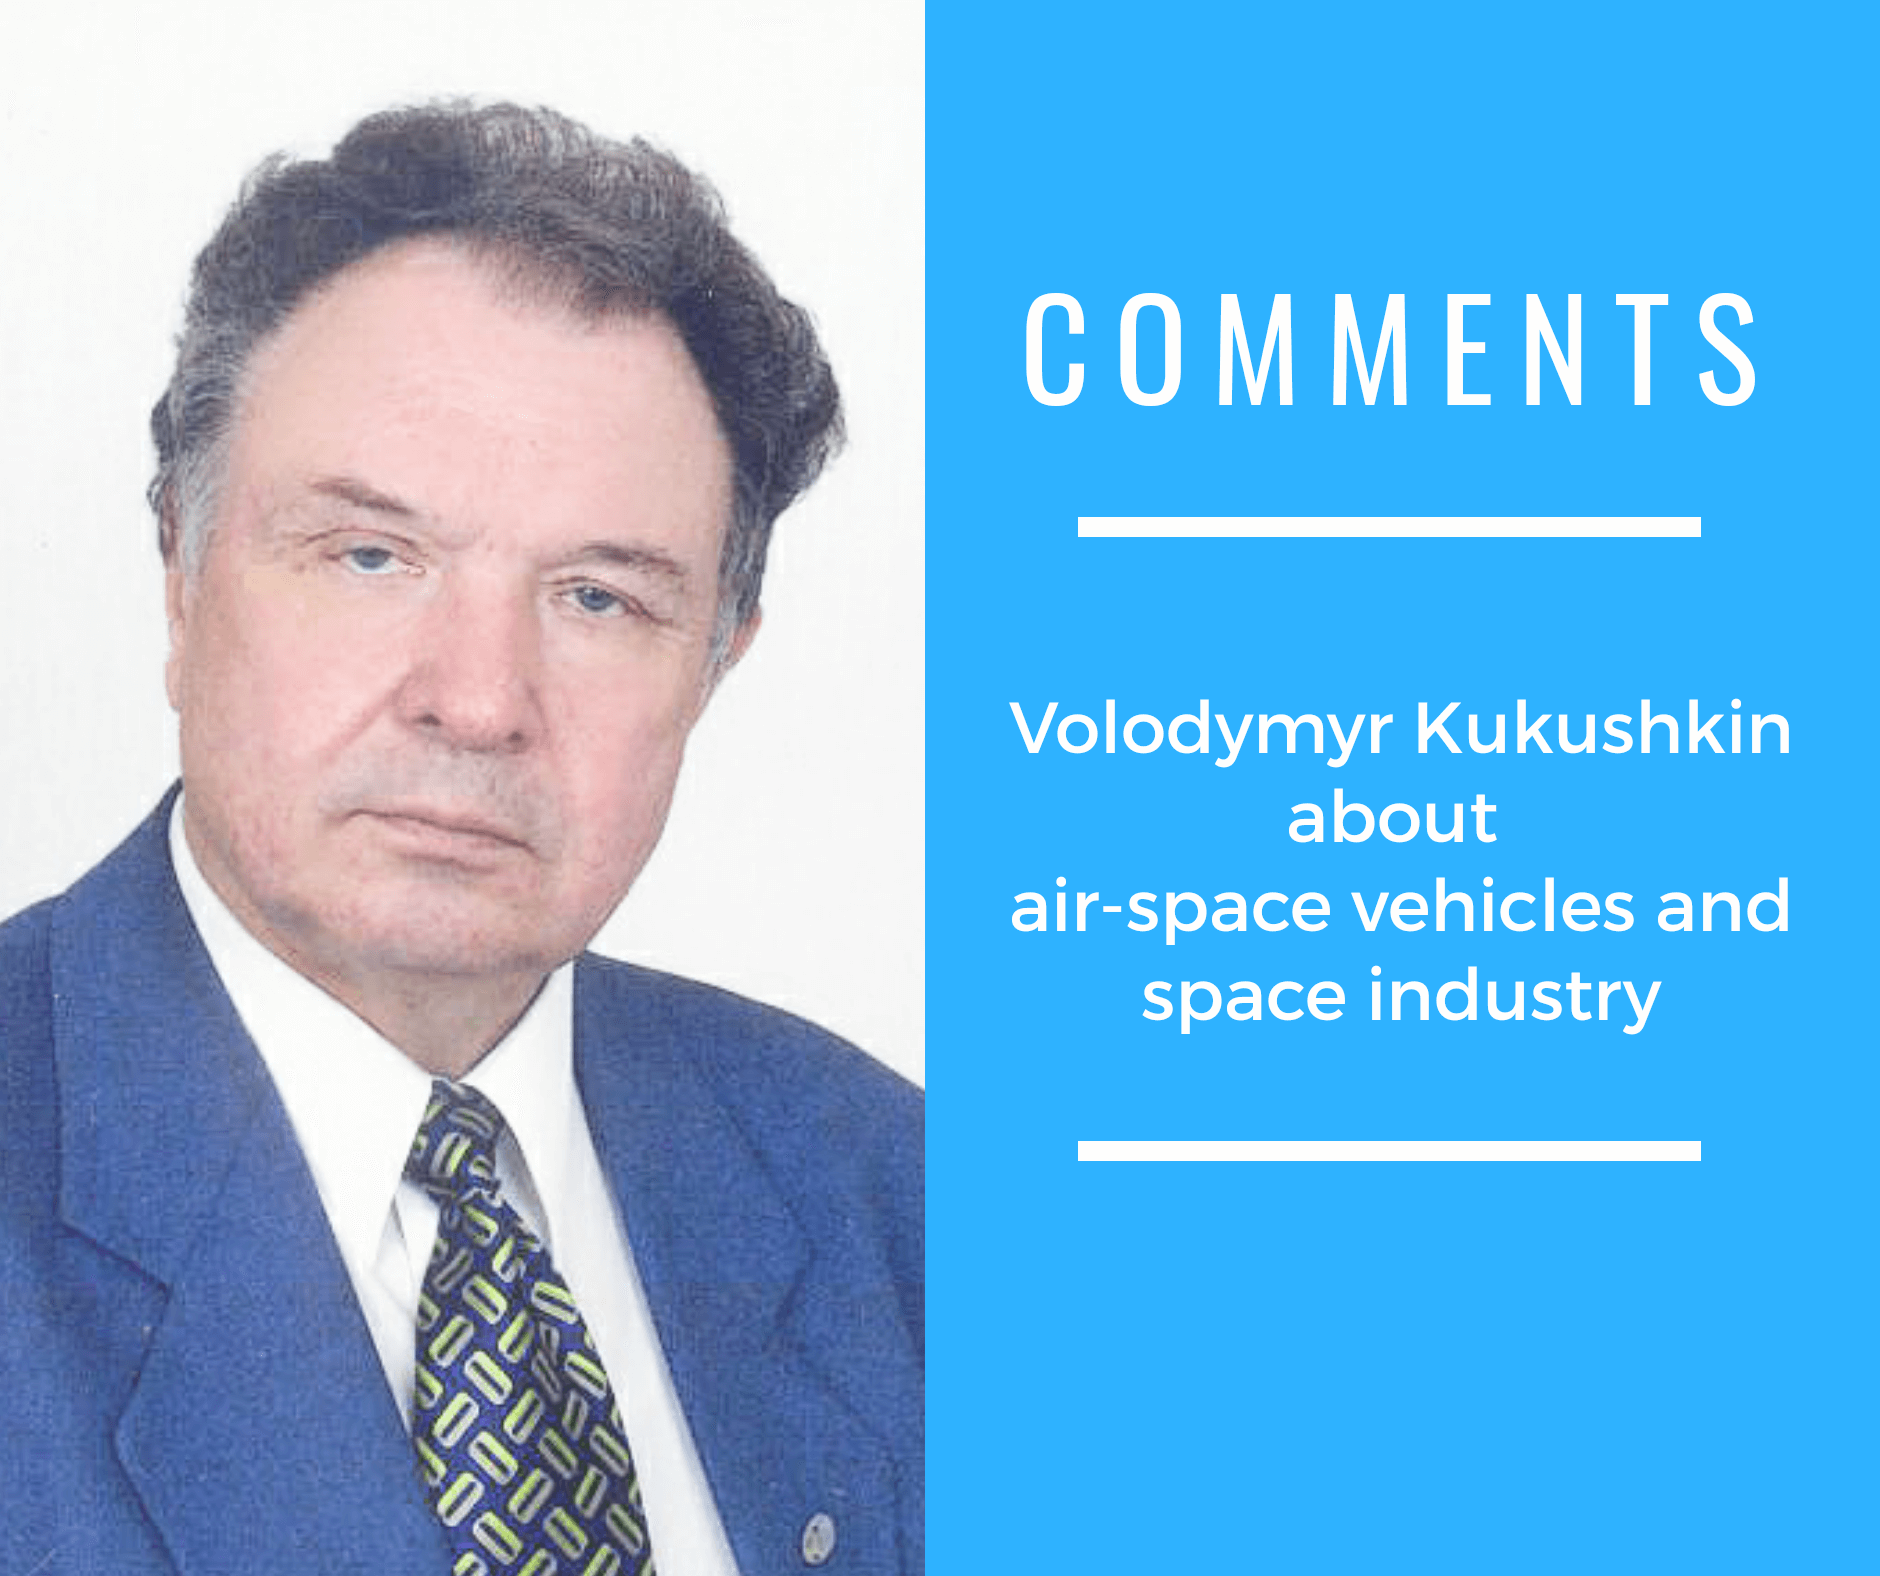 Vladimir Kukushkin about the aerospace aircraft and industry opportunities